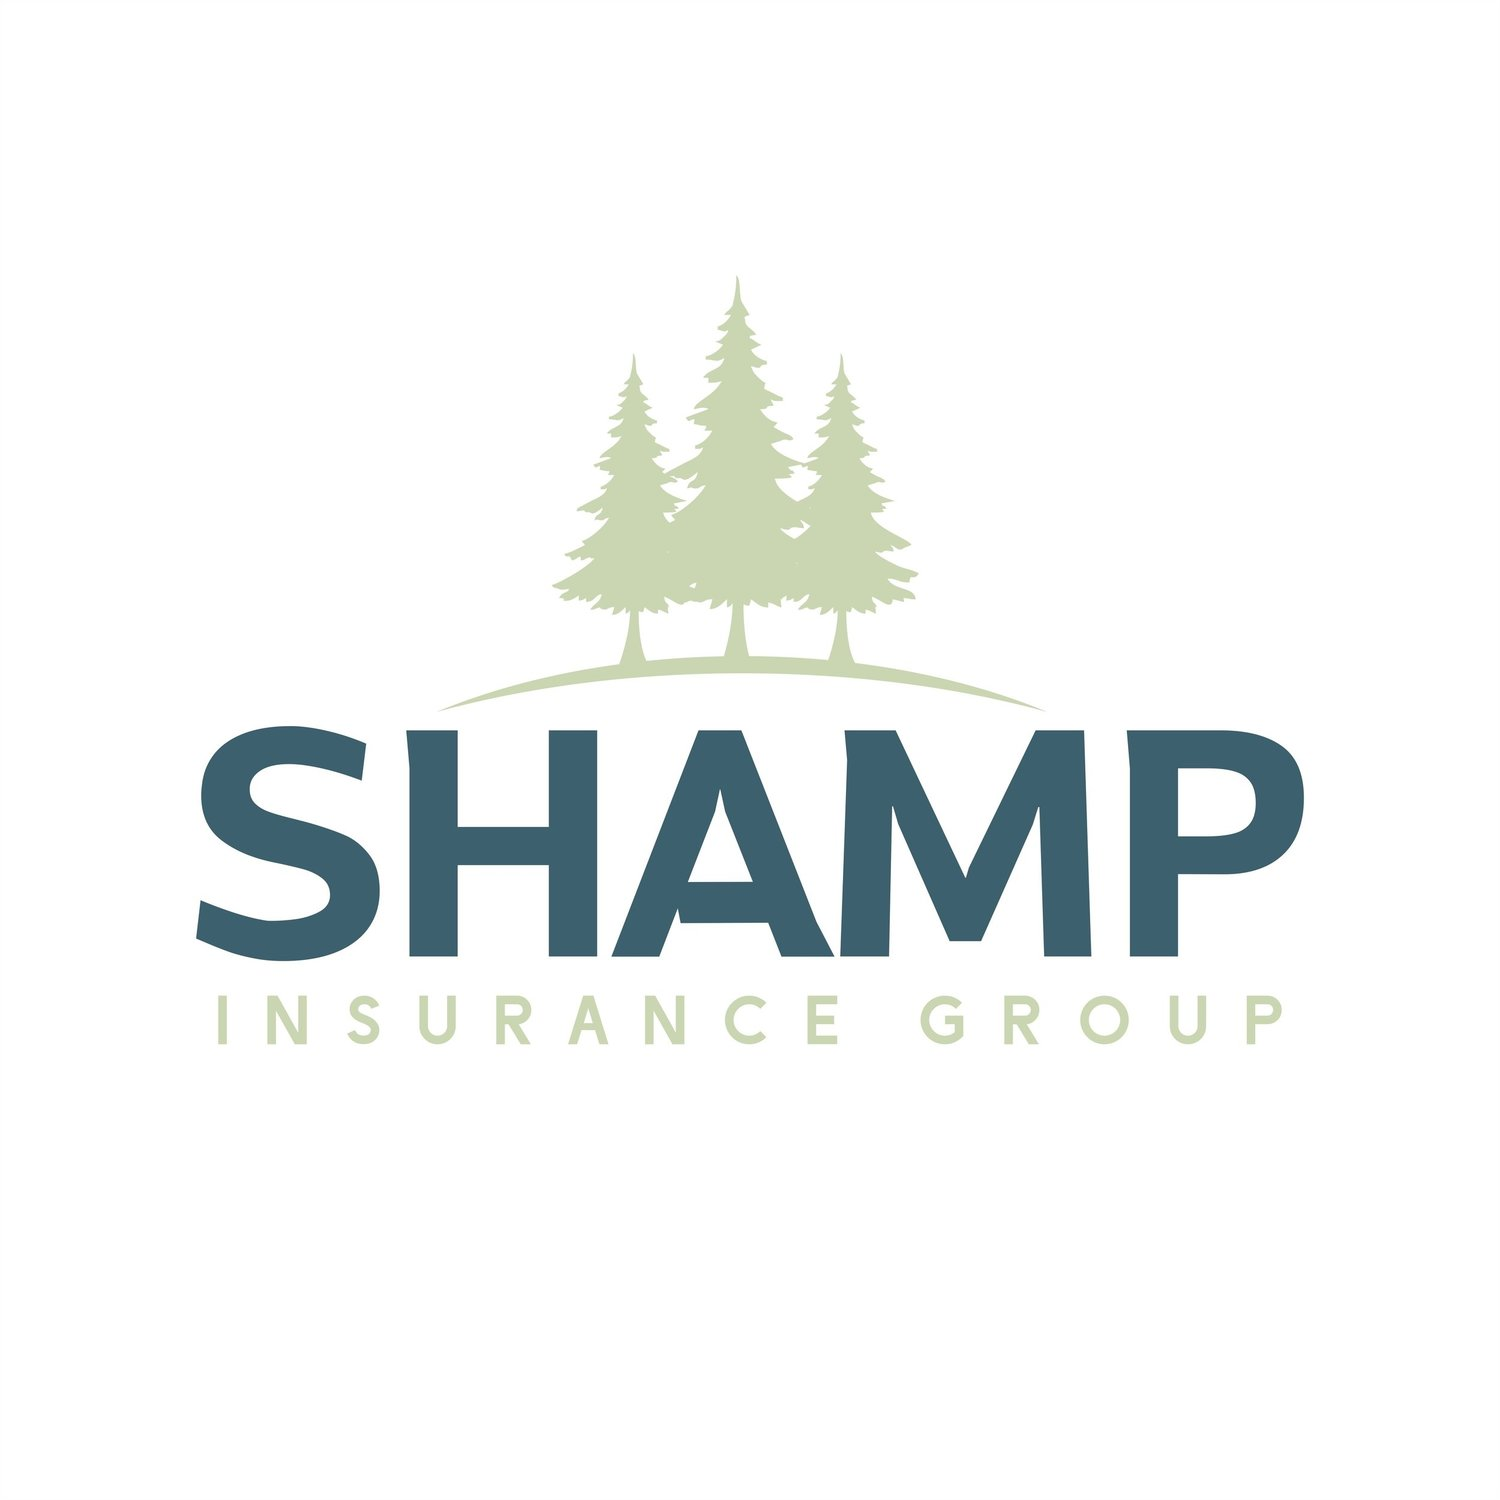 Shamp Insurance Group